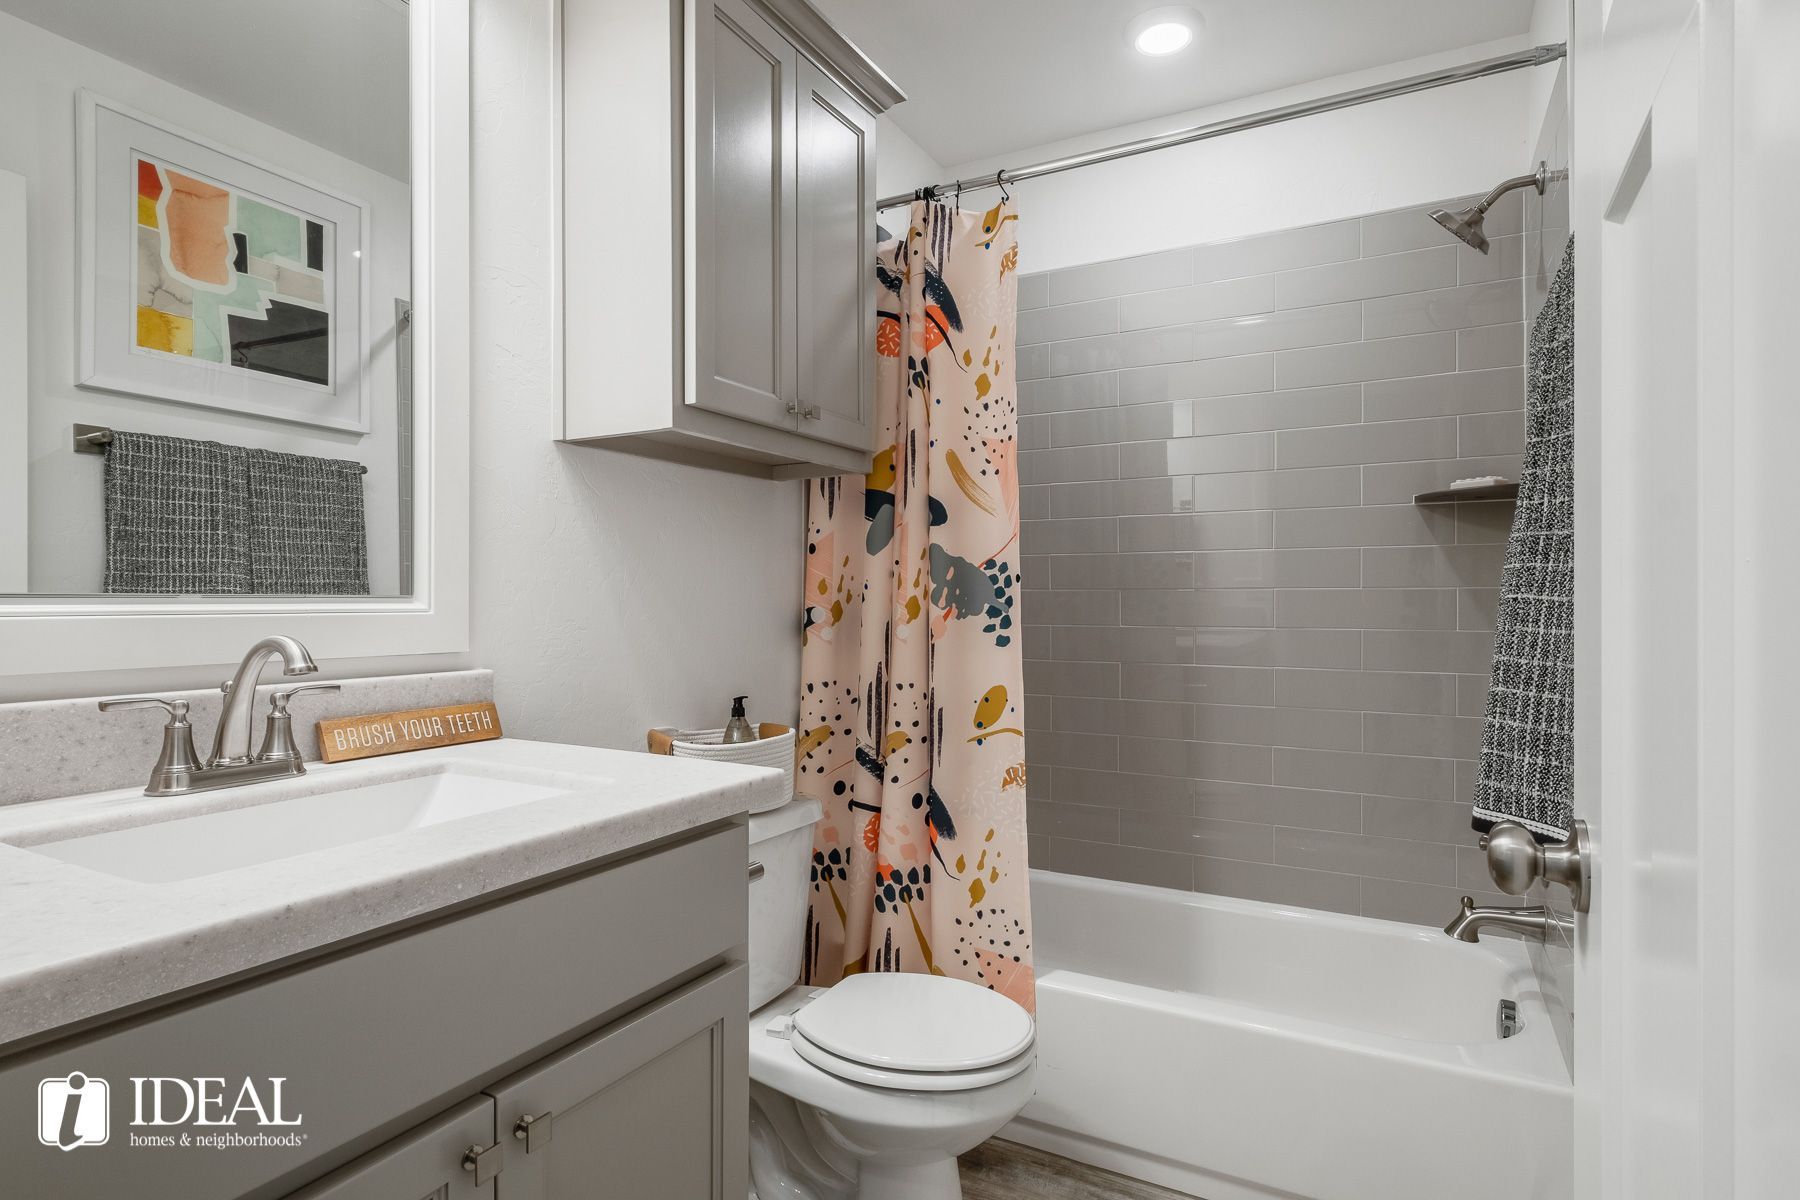 Bathroom featured in the Chadwick By Ideal Homes in Oklahoma City, OK